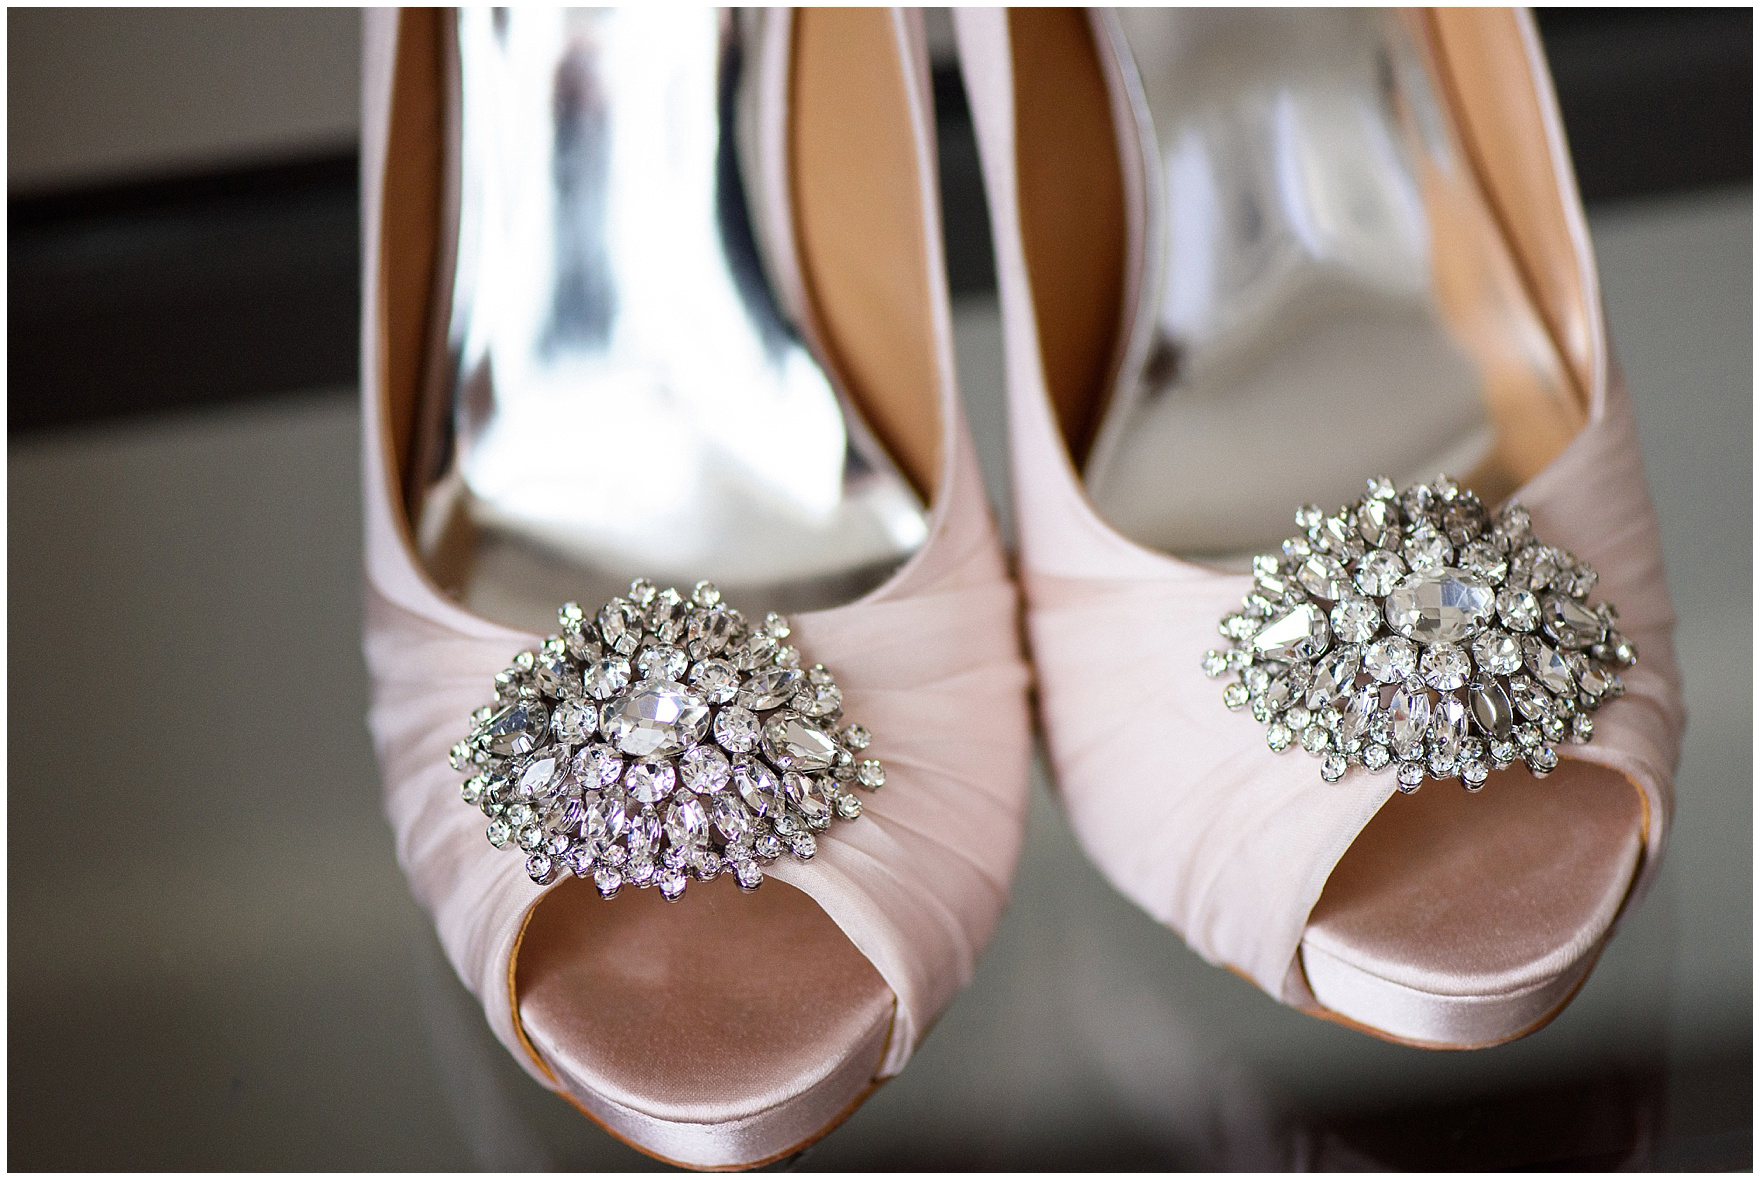 Sparkly wedding shoes for a Hotel Arista Naperville wedding.